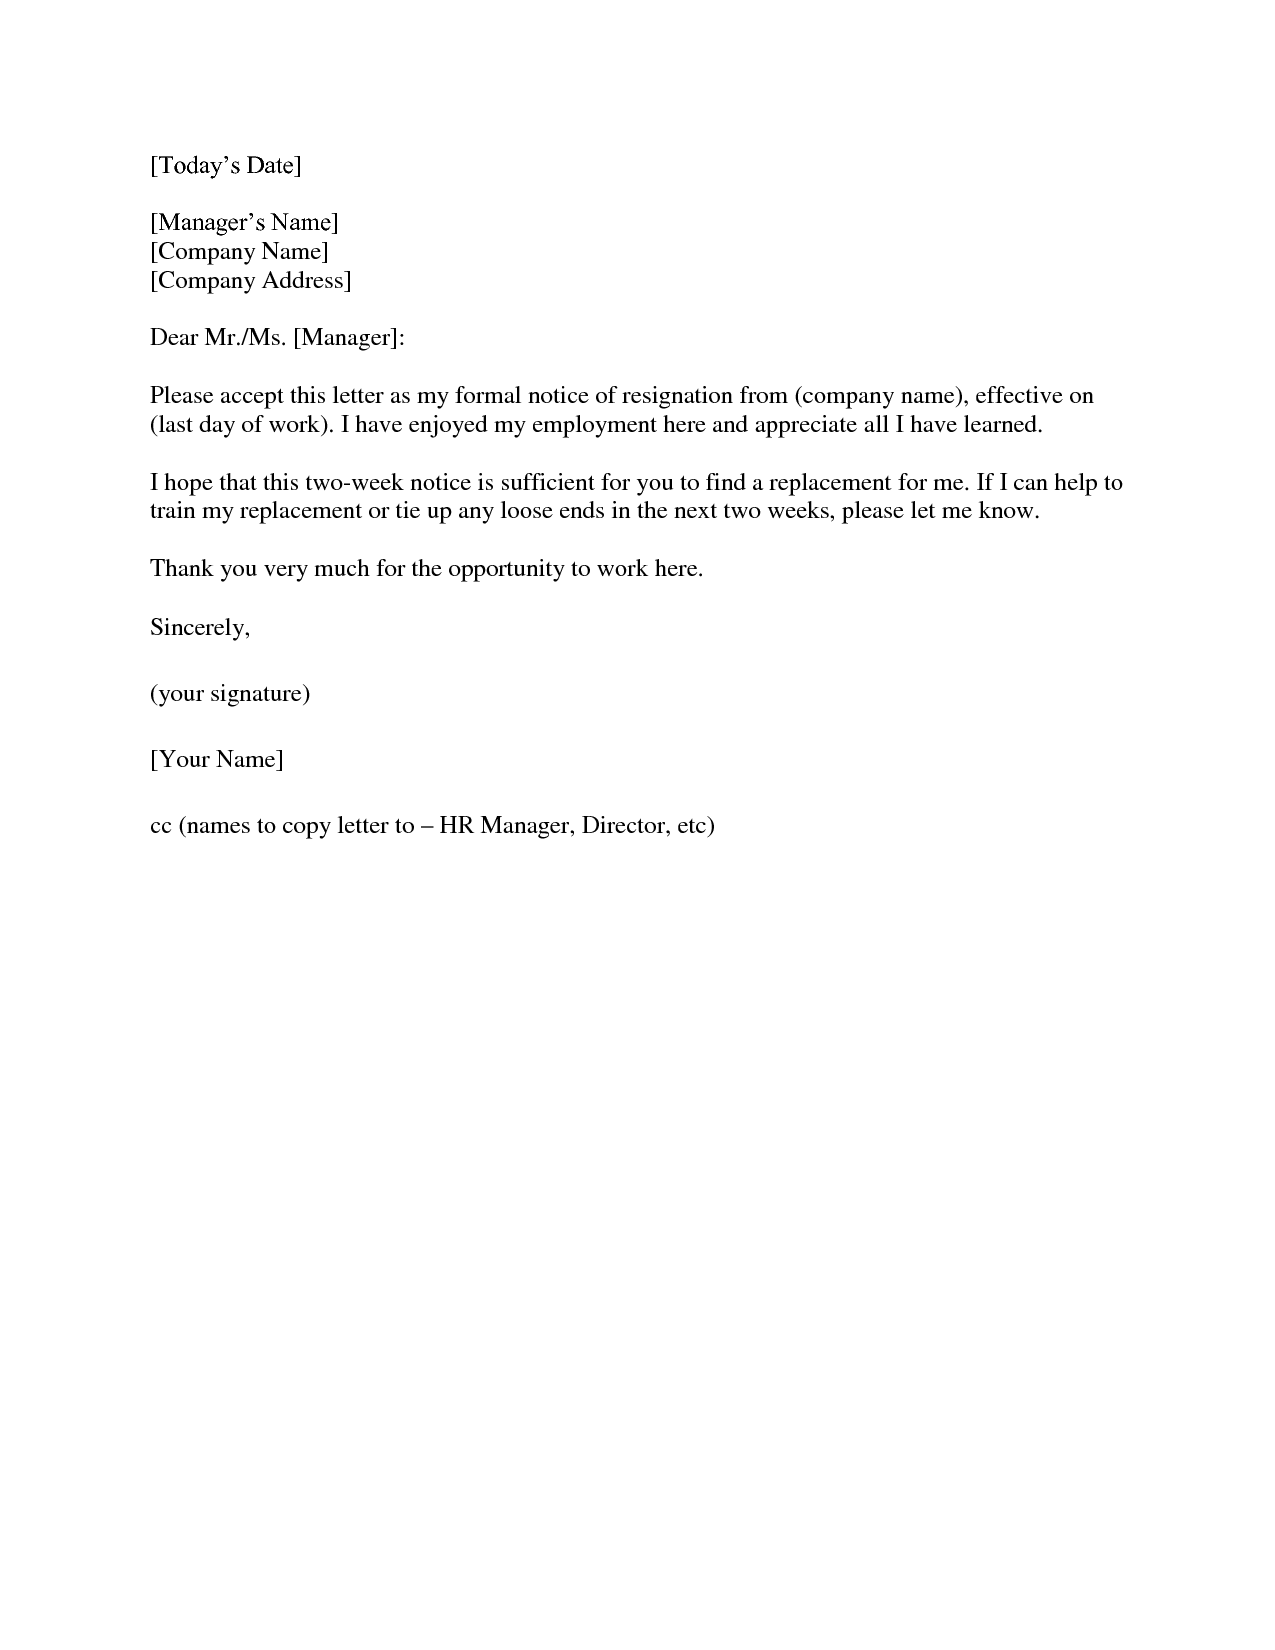 Resignation Letter 2 Week Notice - WOW.com - Image Results | new ...